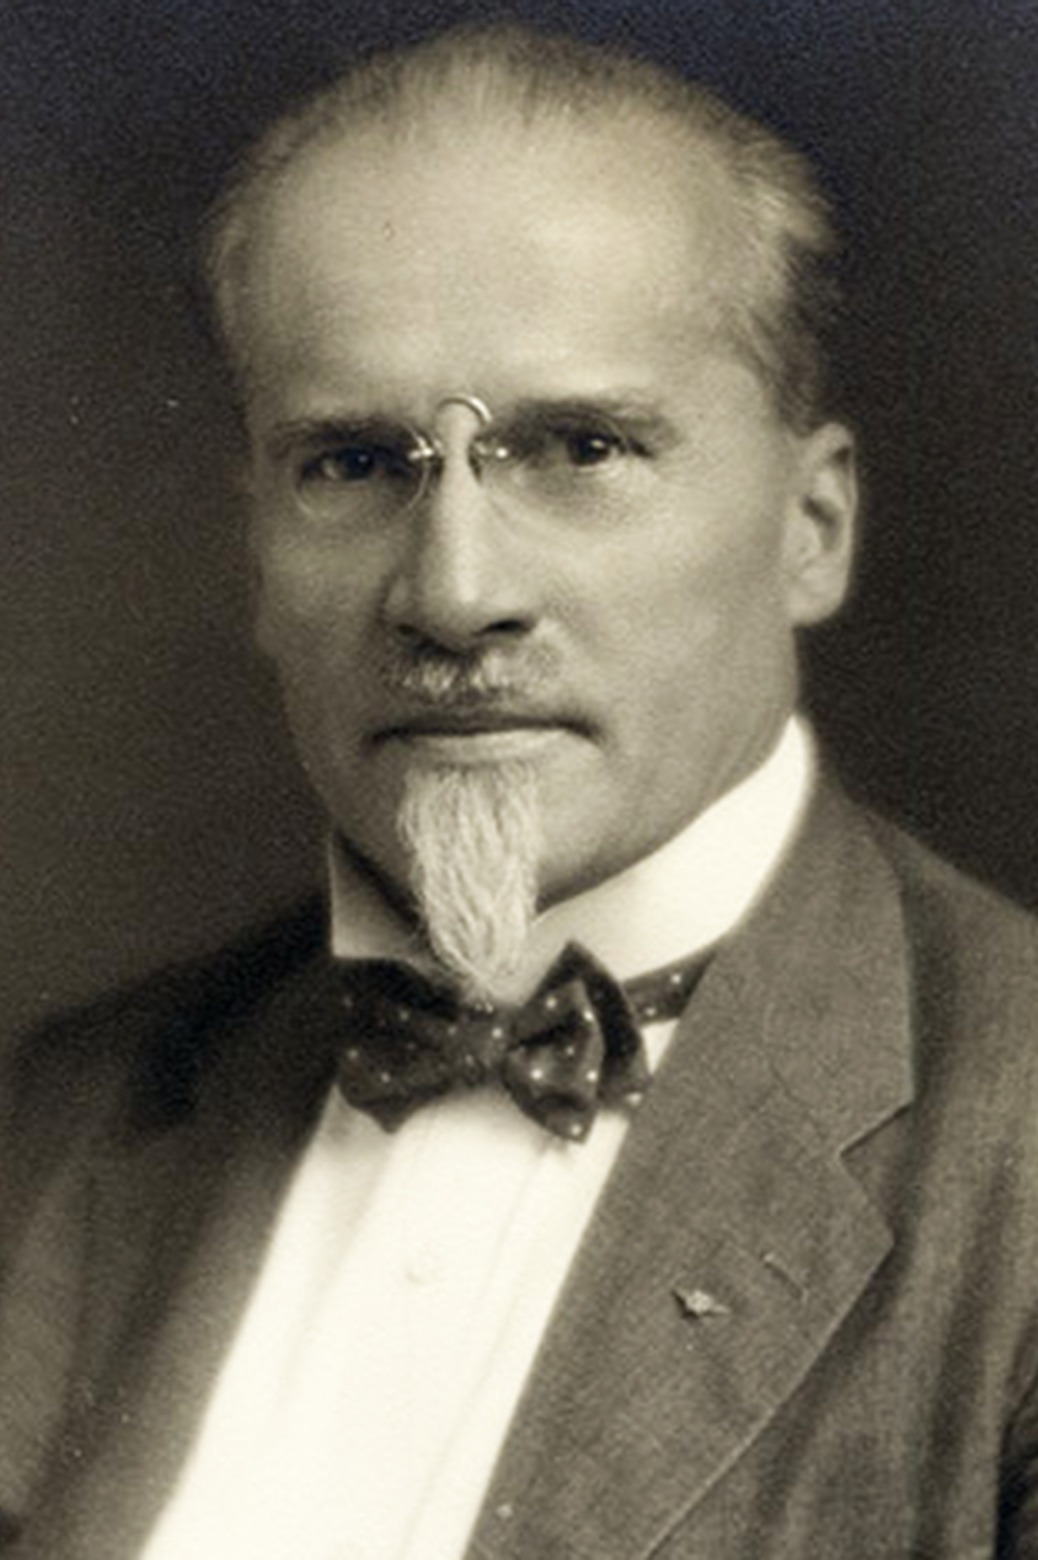 Portrait of Felix Pawlowski